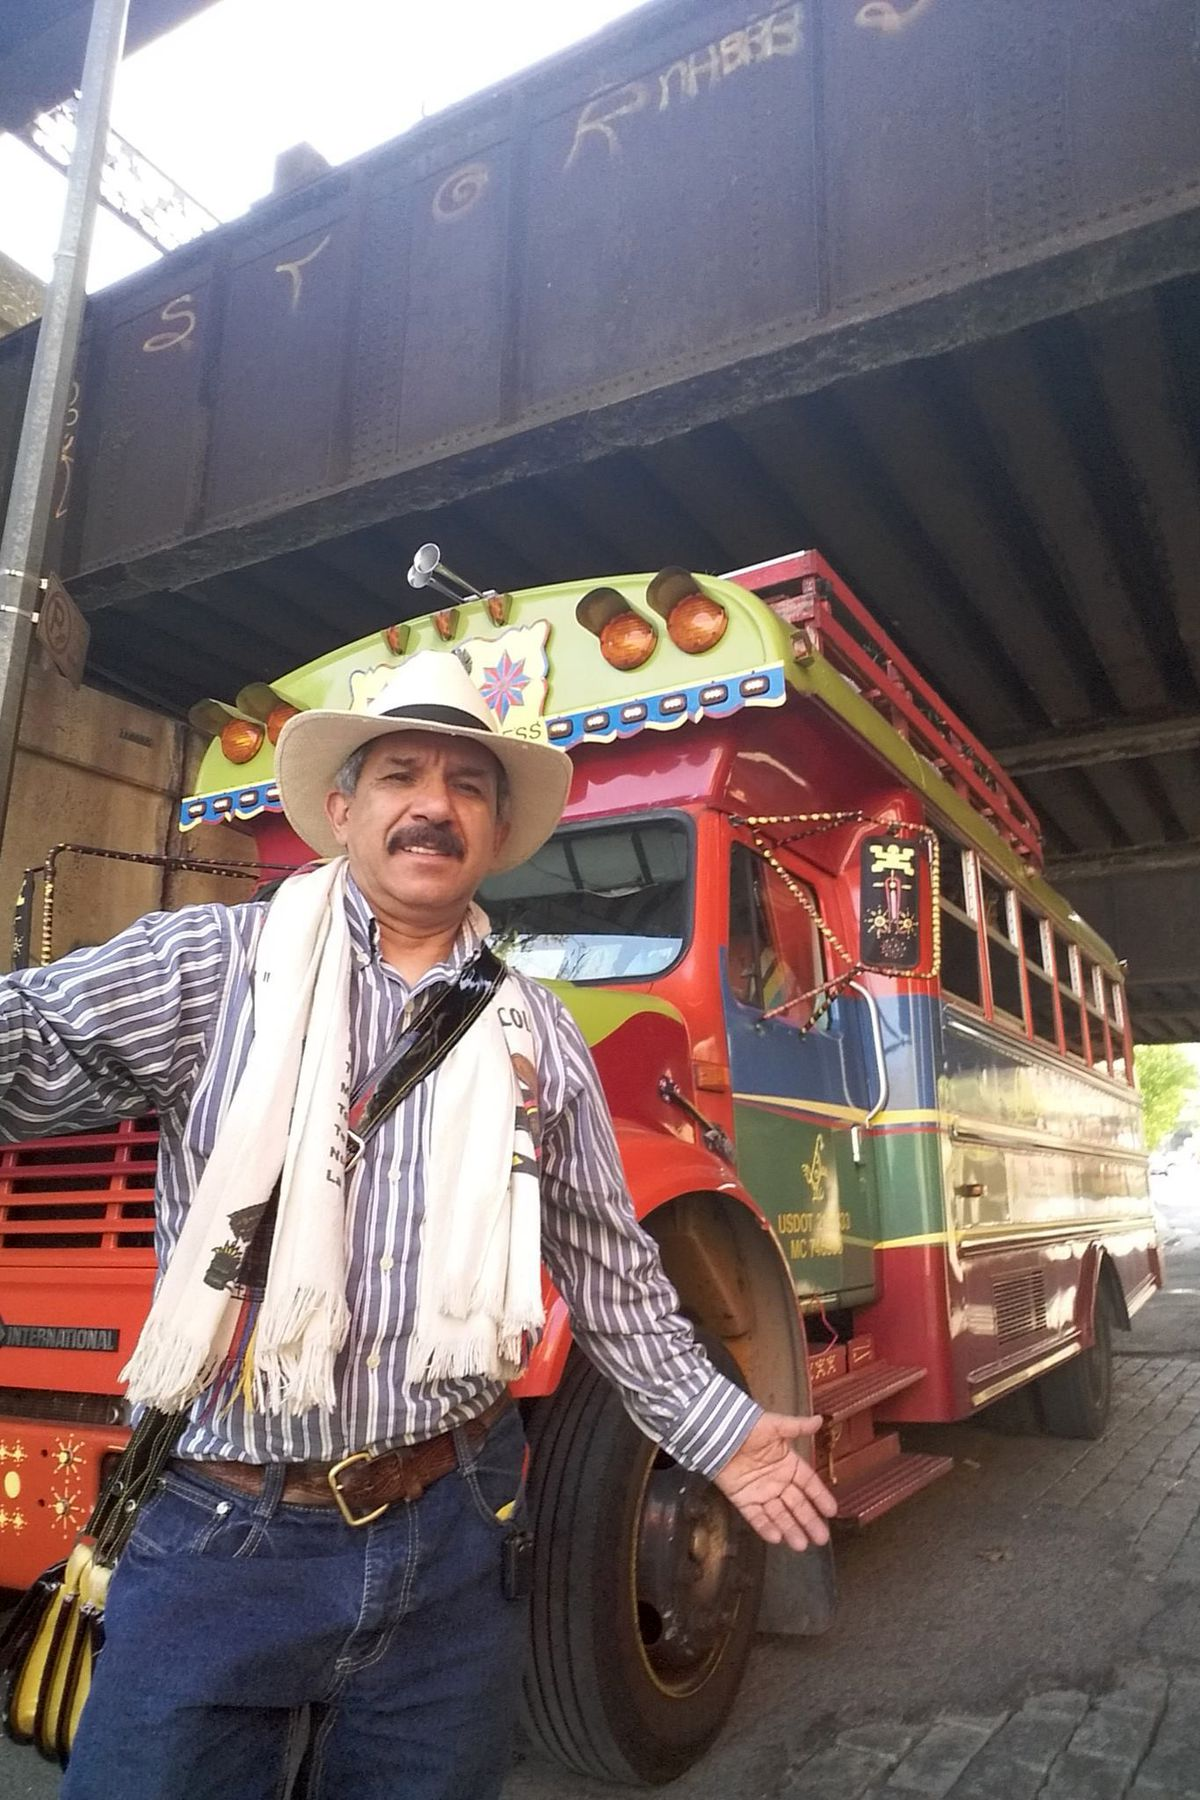 Daniel Bernal hangs out with his Colombian party bus bus at a Bronx Bar.